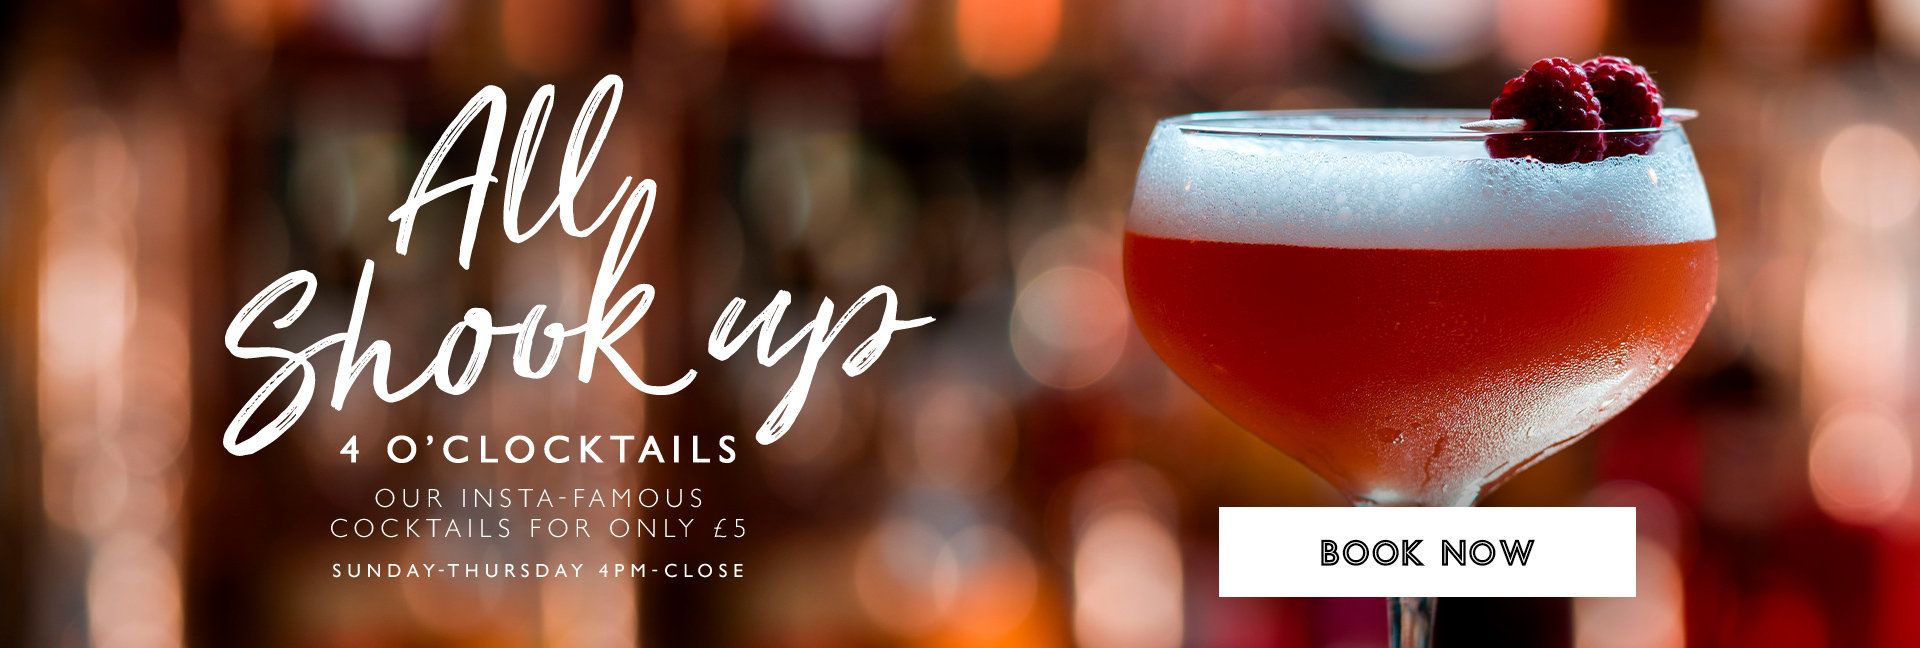 4 O'clocktails at All Bar One Brindleyplace - Book now